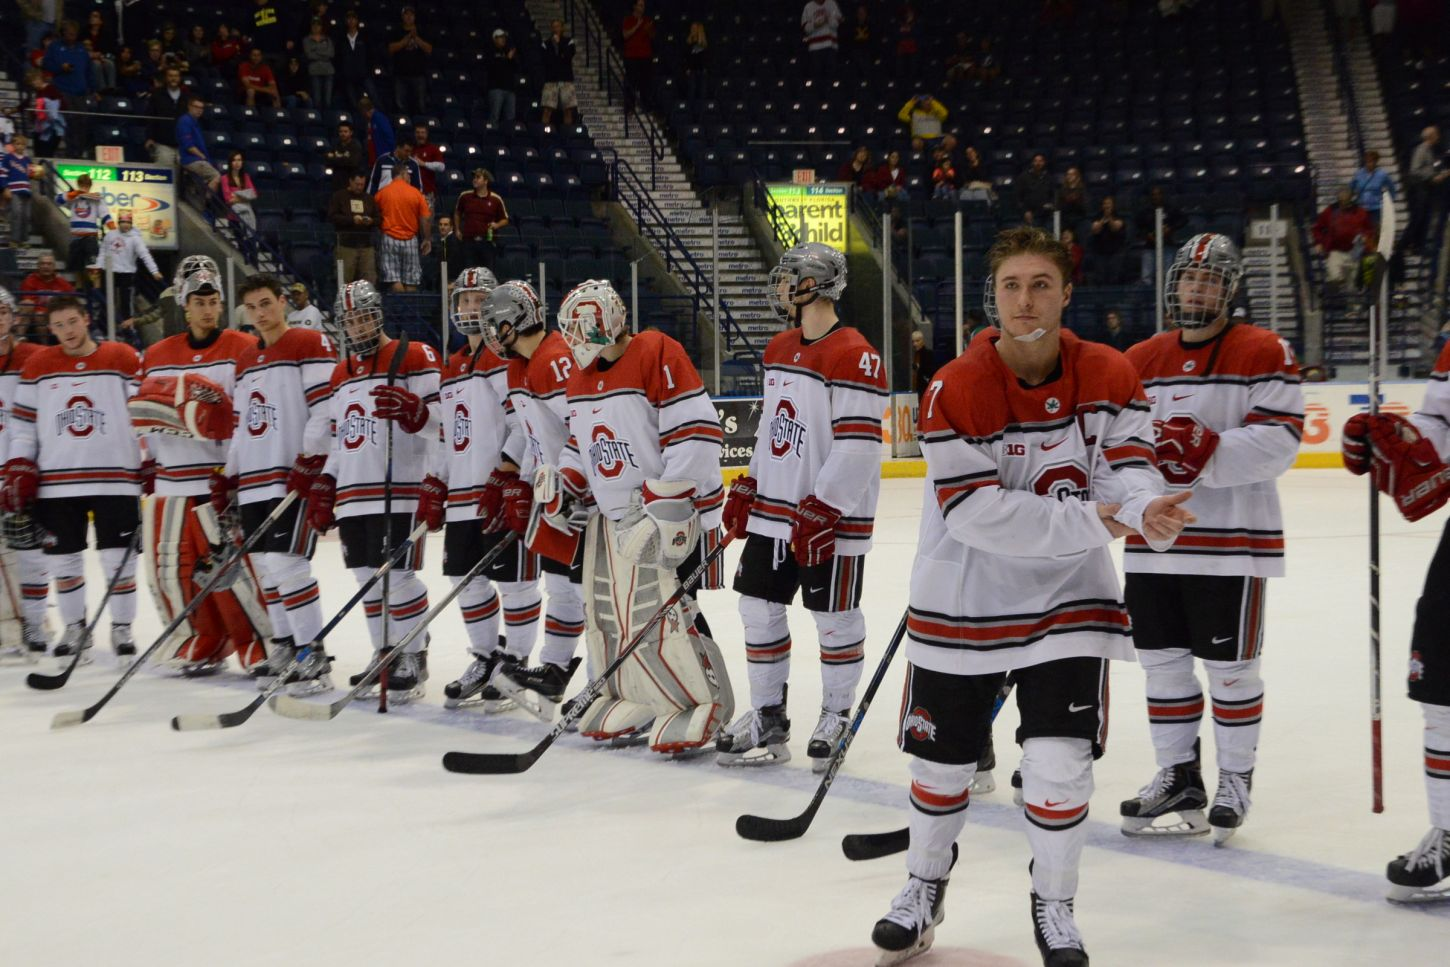 Ohio State wins 2015 Florida College Hockey Classic with 8-0 victory over Cornell